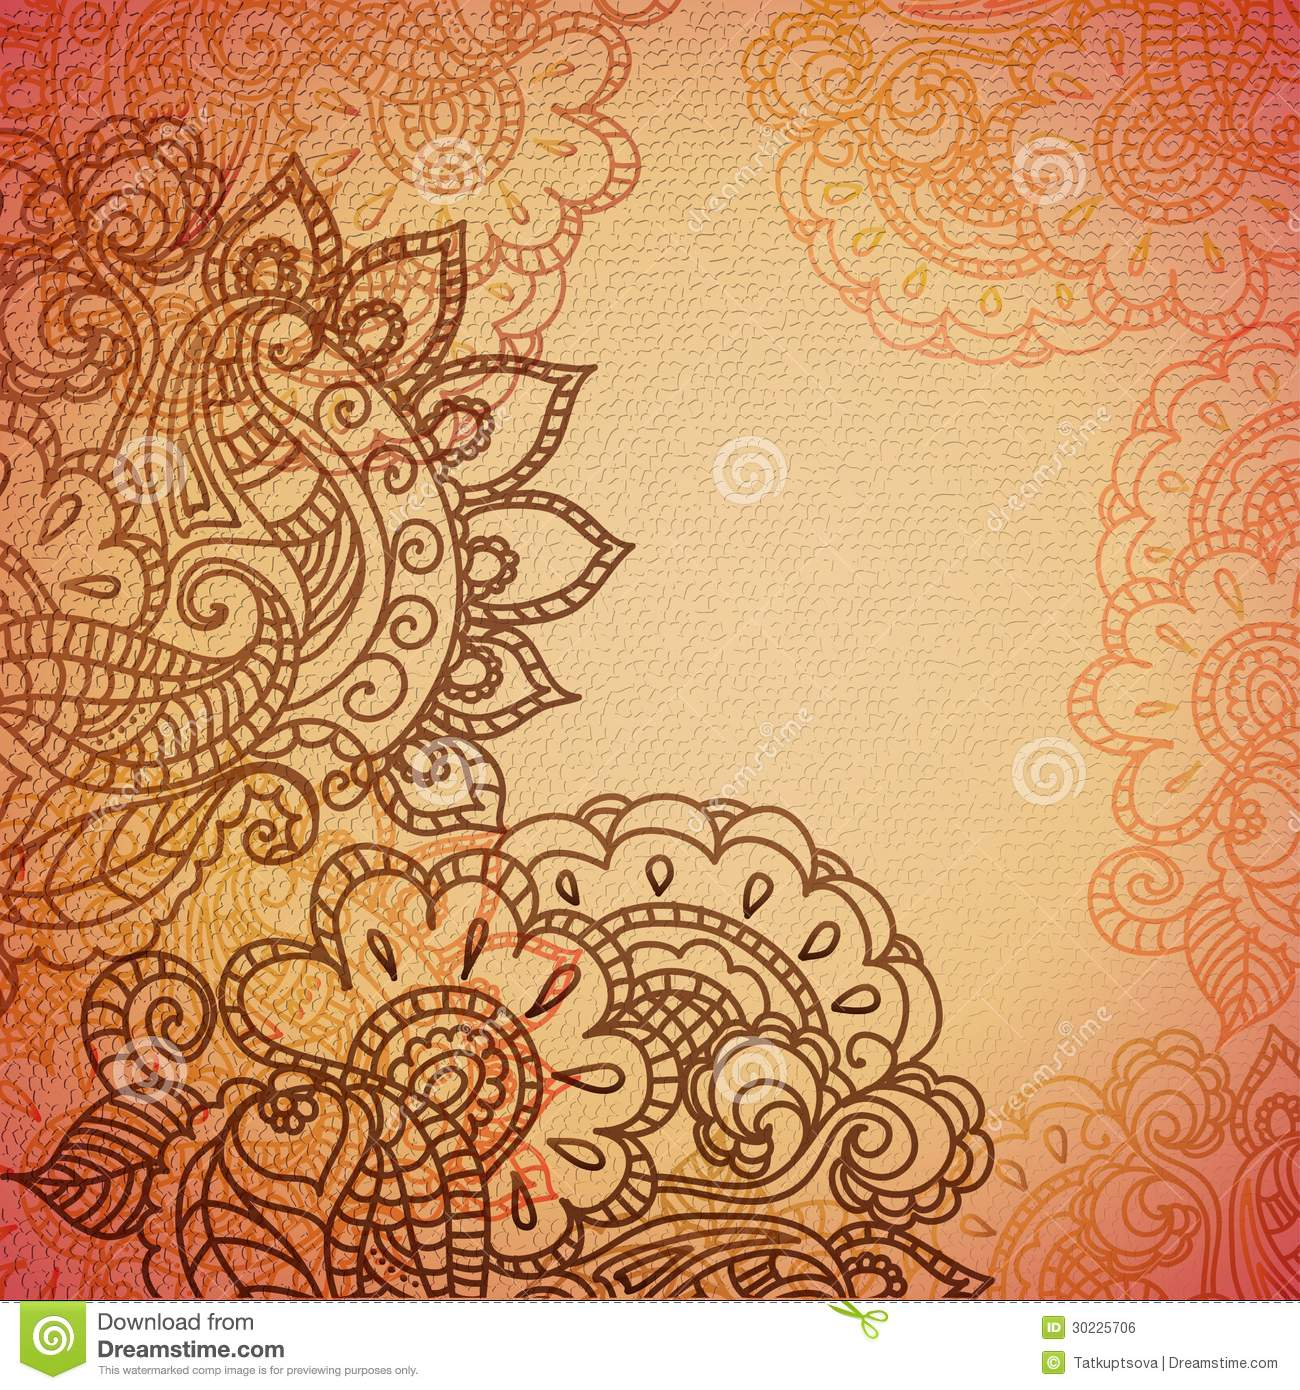 Vintage Paisley Ornament Background Stock Vector - Image ...